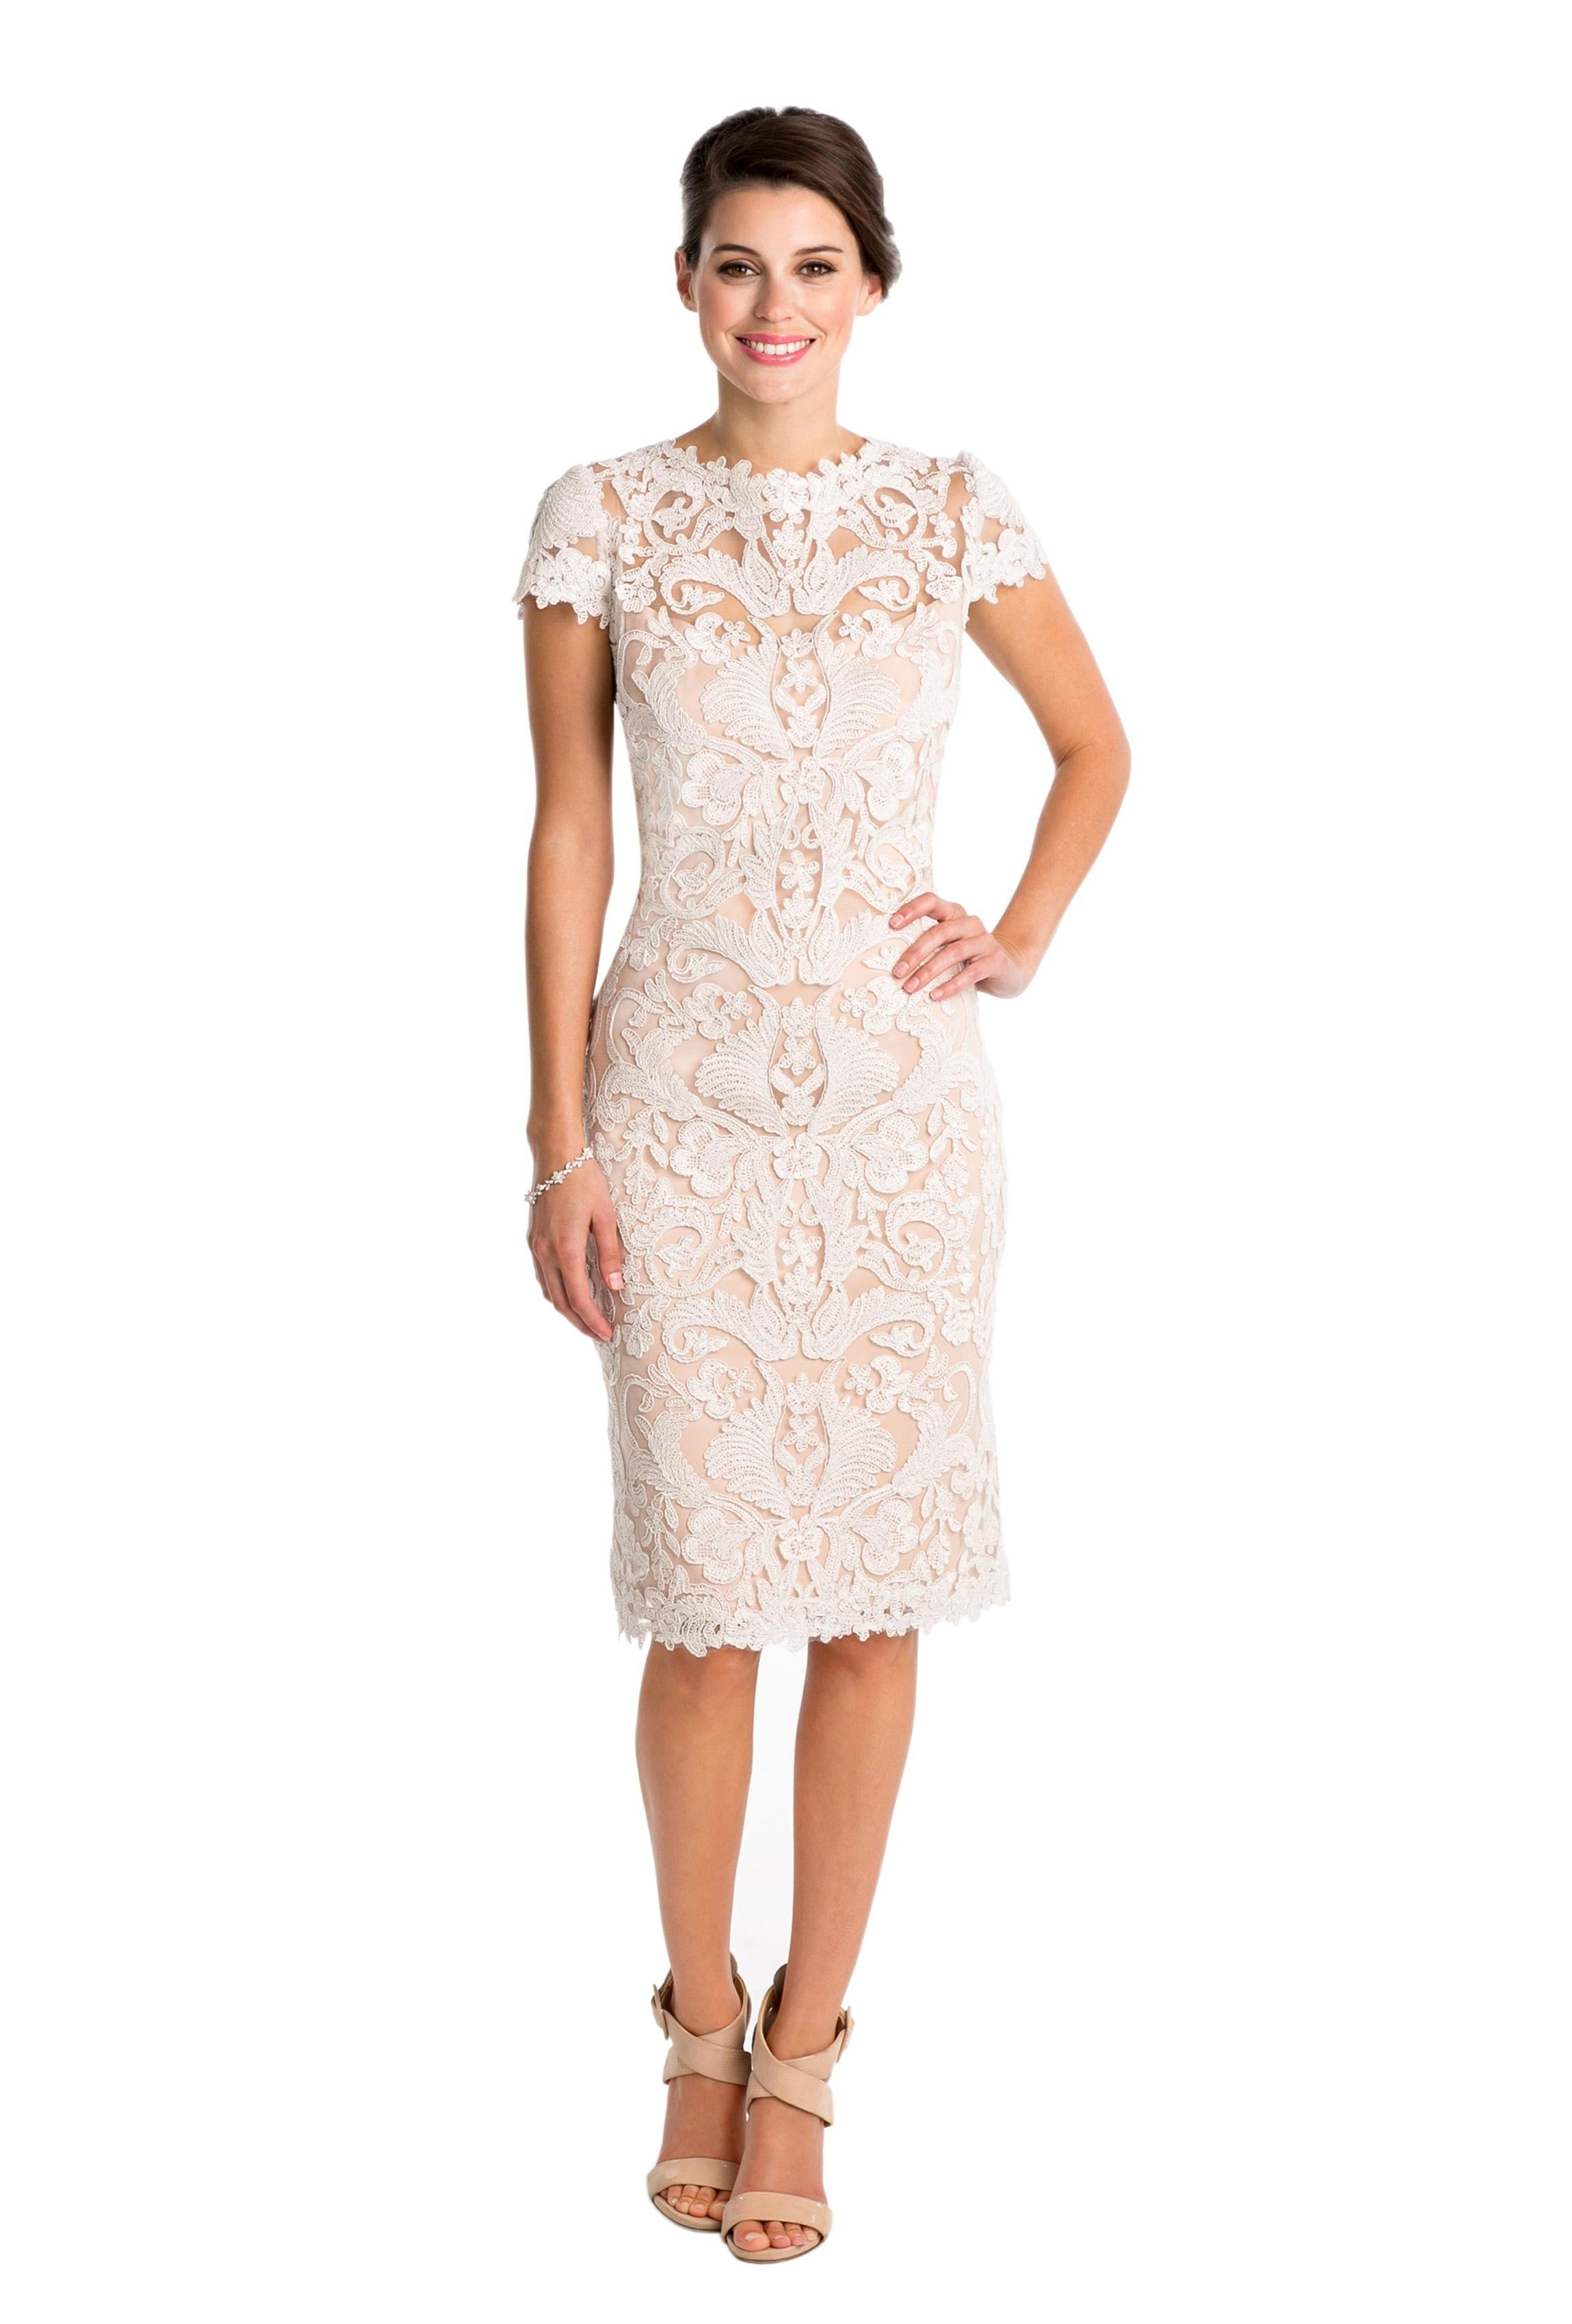 A short lace dress with ivory lace over a petal sheath and